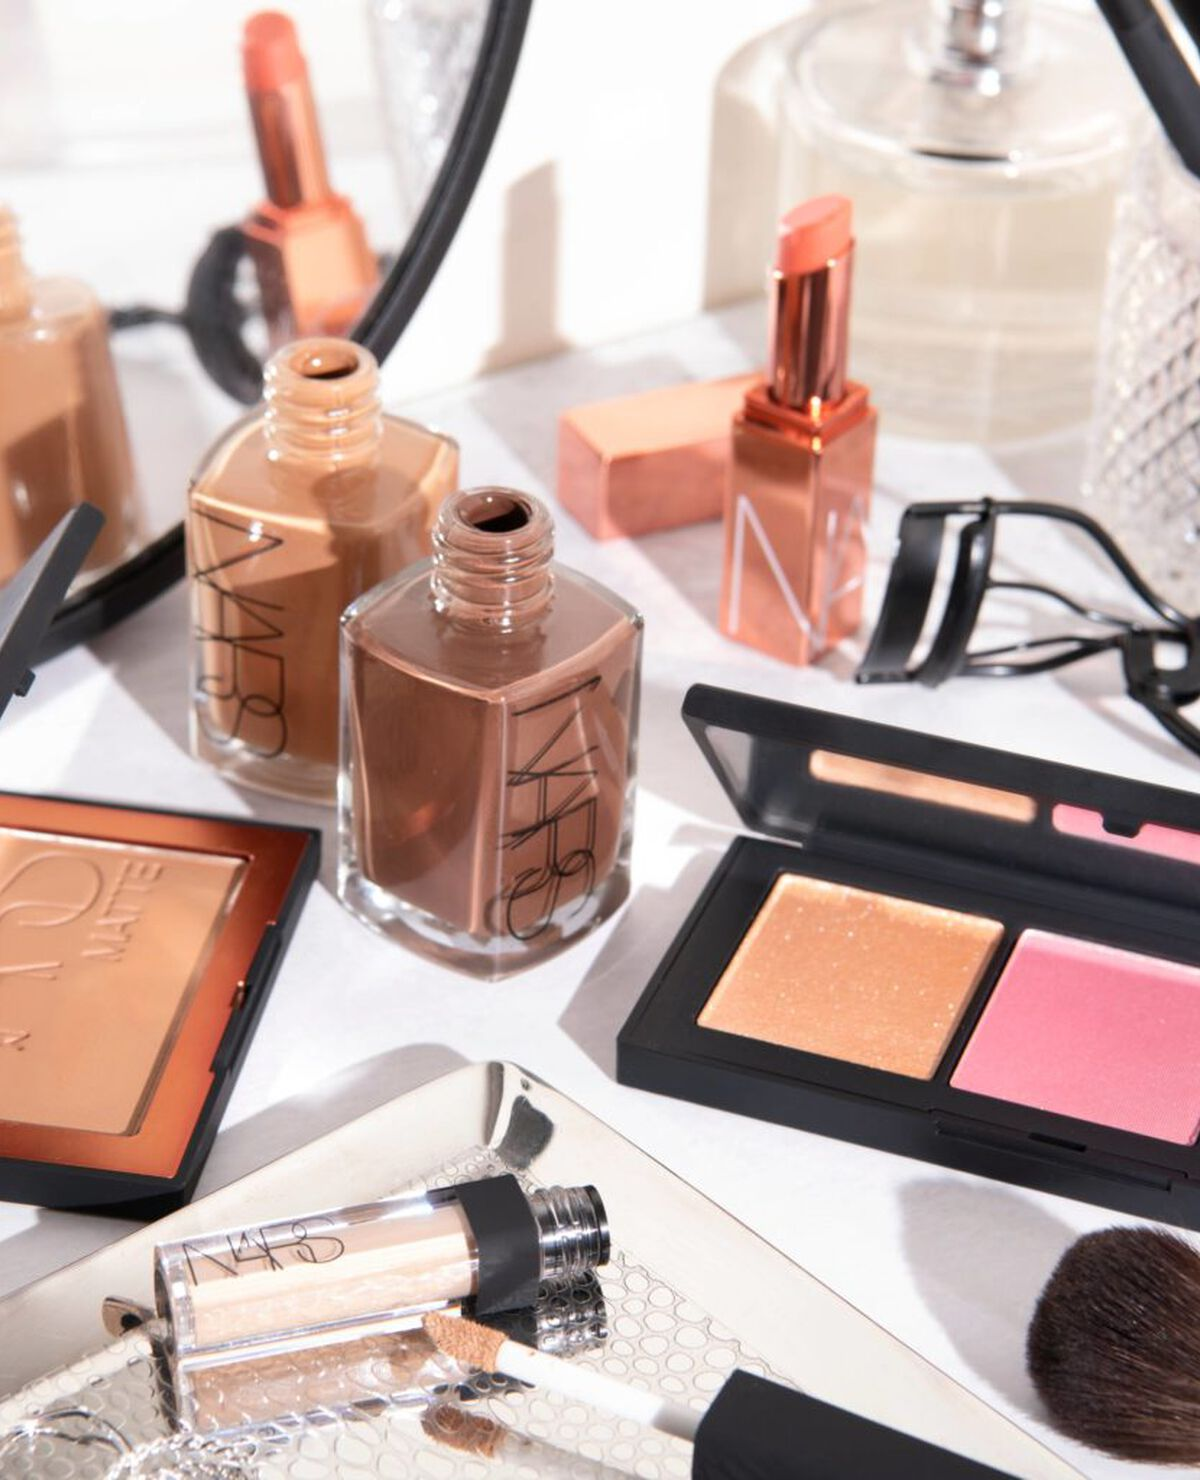 MOST WANTED | The NARS Products Makeup Artists Love